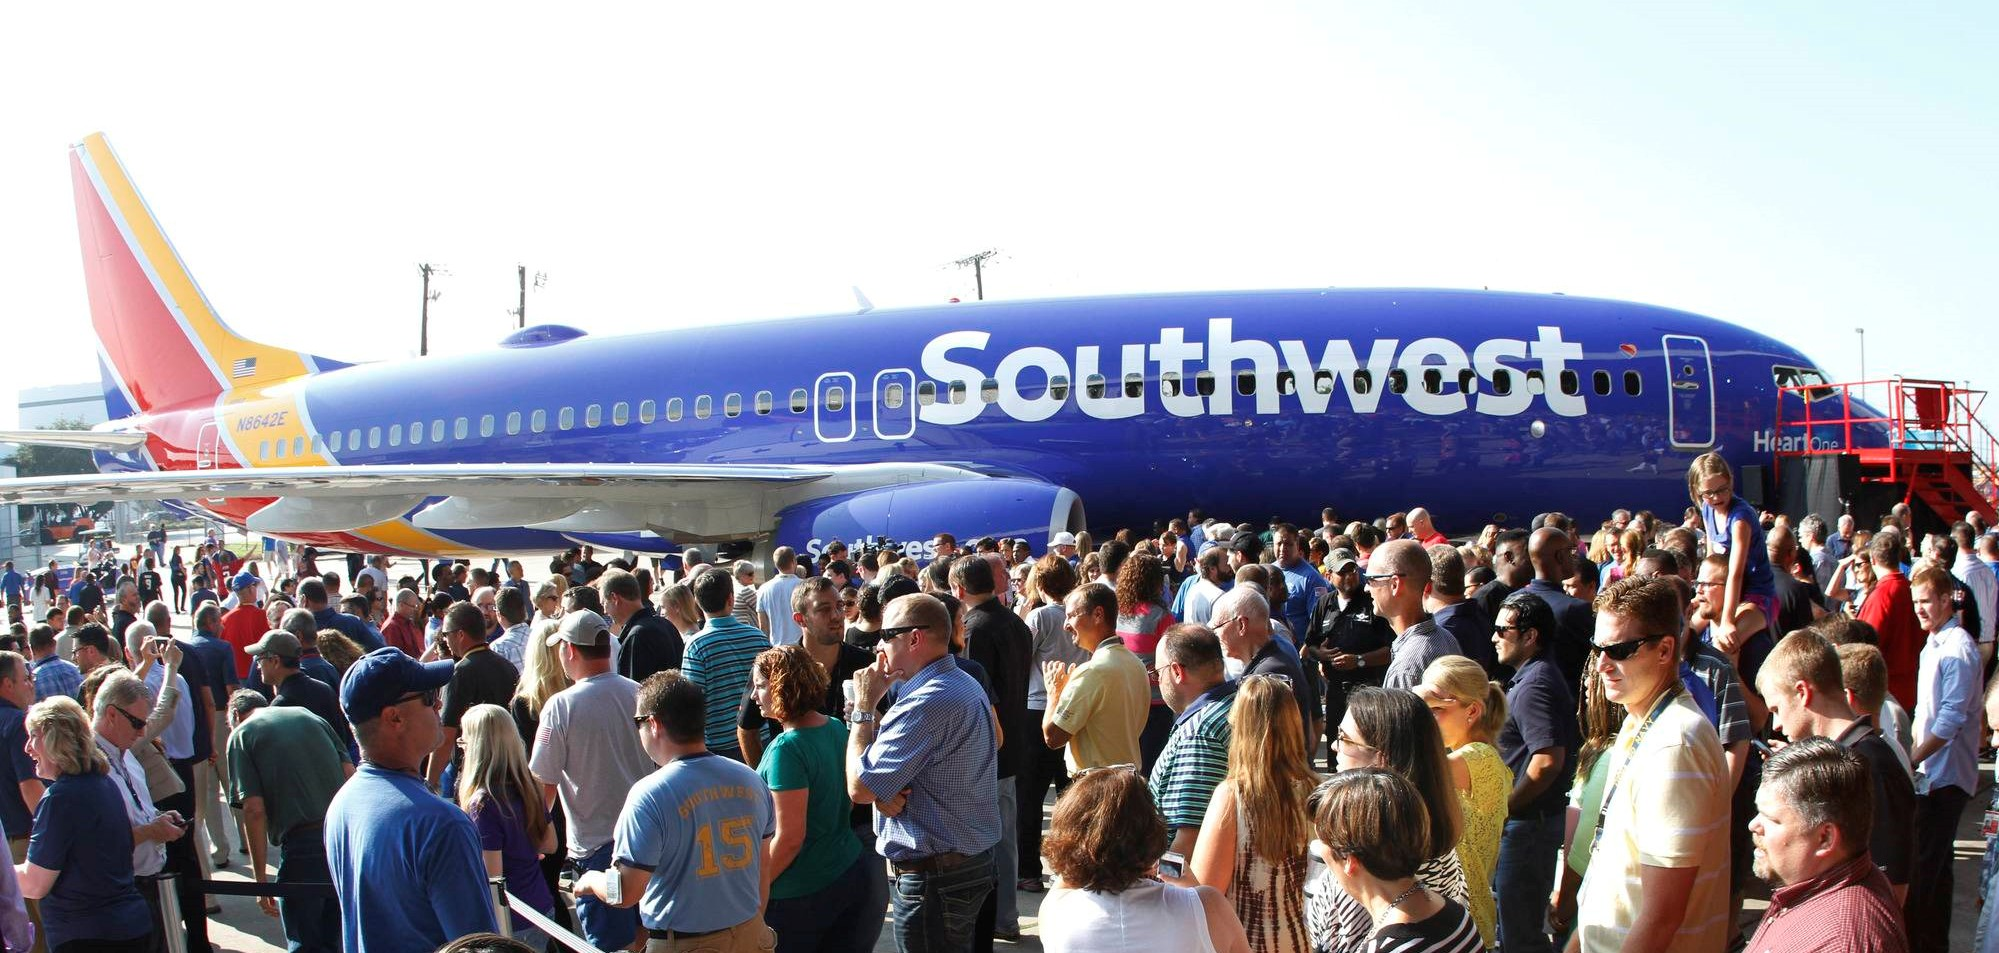 Southwest Airlines No Longer Low-Cost Airline